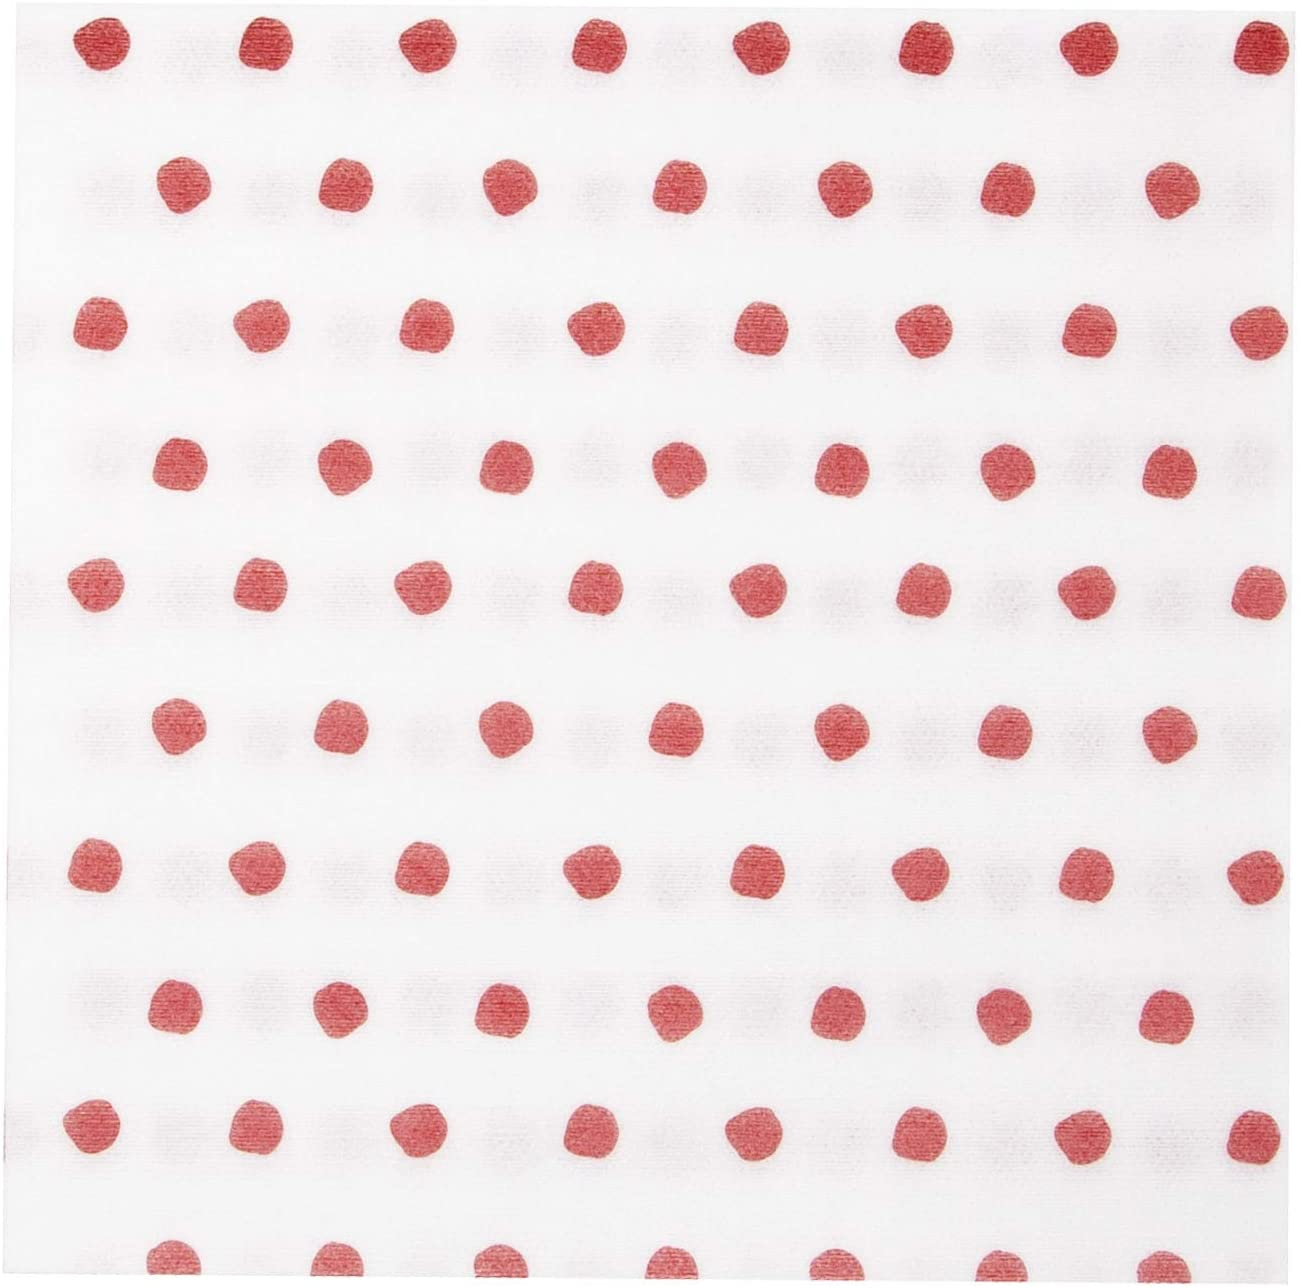 Vietri Papersoft Napkins Red Dot Dinner Napkins (Pack of 50) - Decorative and Eco-Friendly Party Supplies